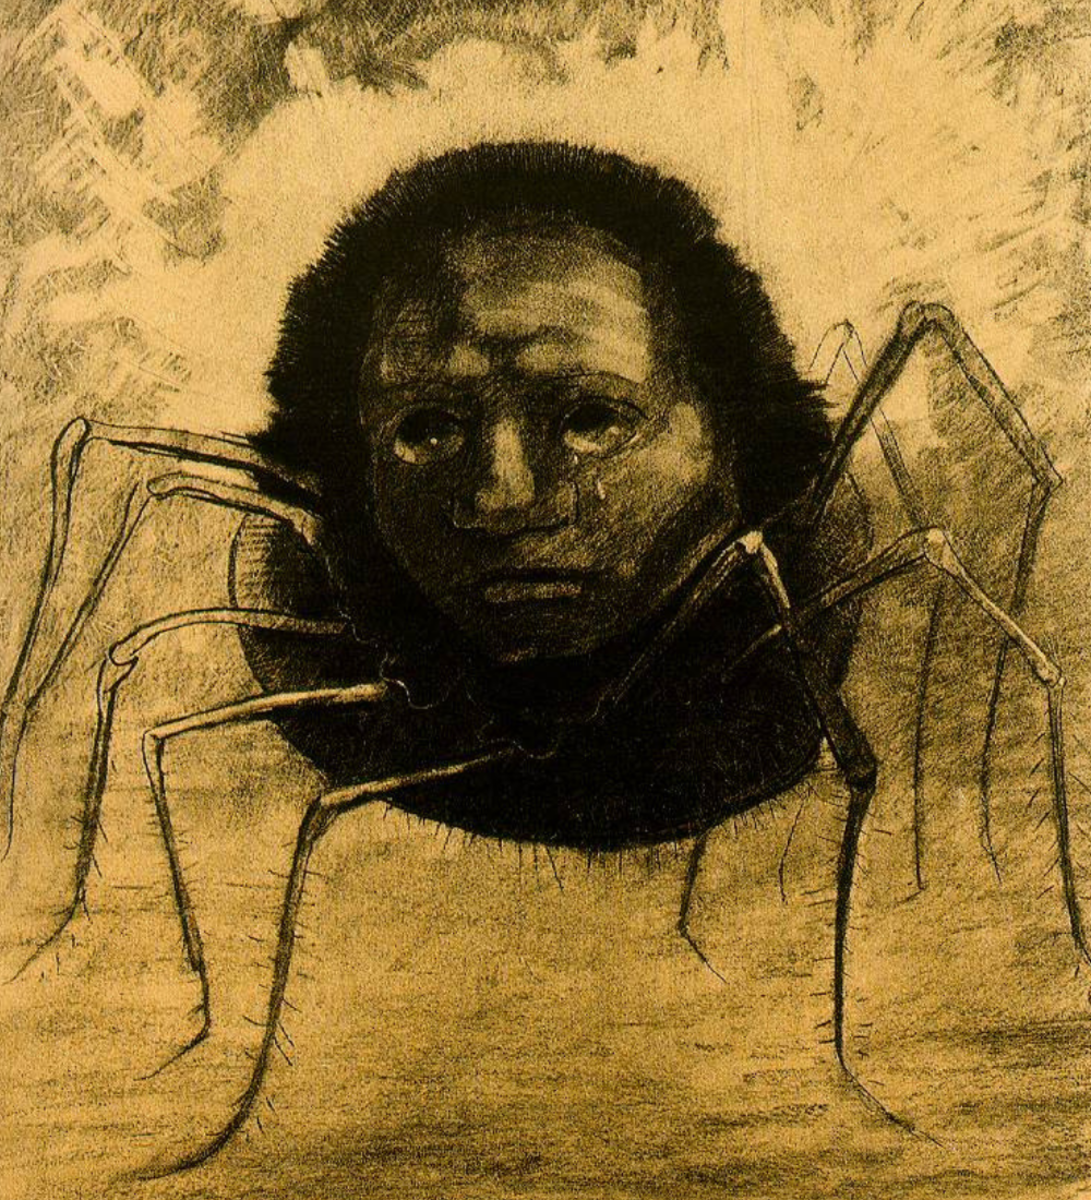 In order to interpret your spider dream, the first thing to do is determine what the spider represents to you. (l'Araignée qui Pleure: The Crying Spider.)